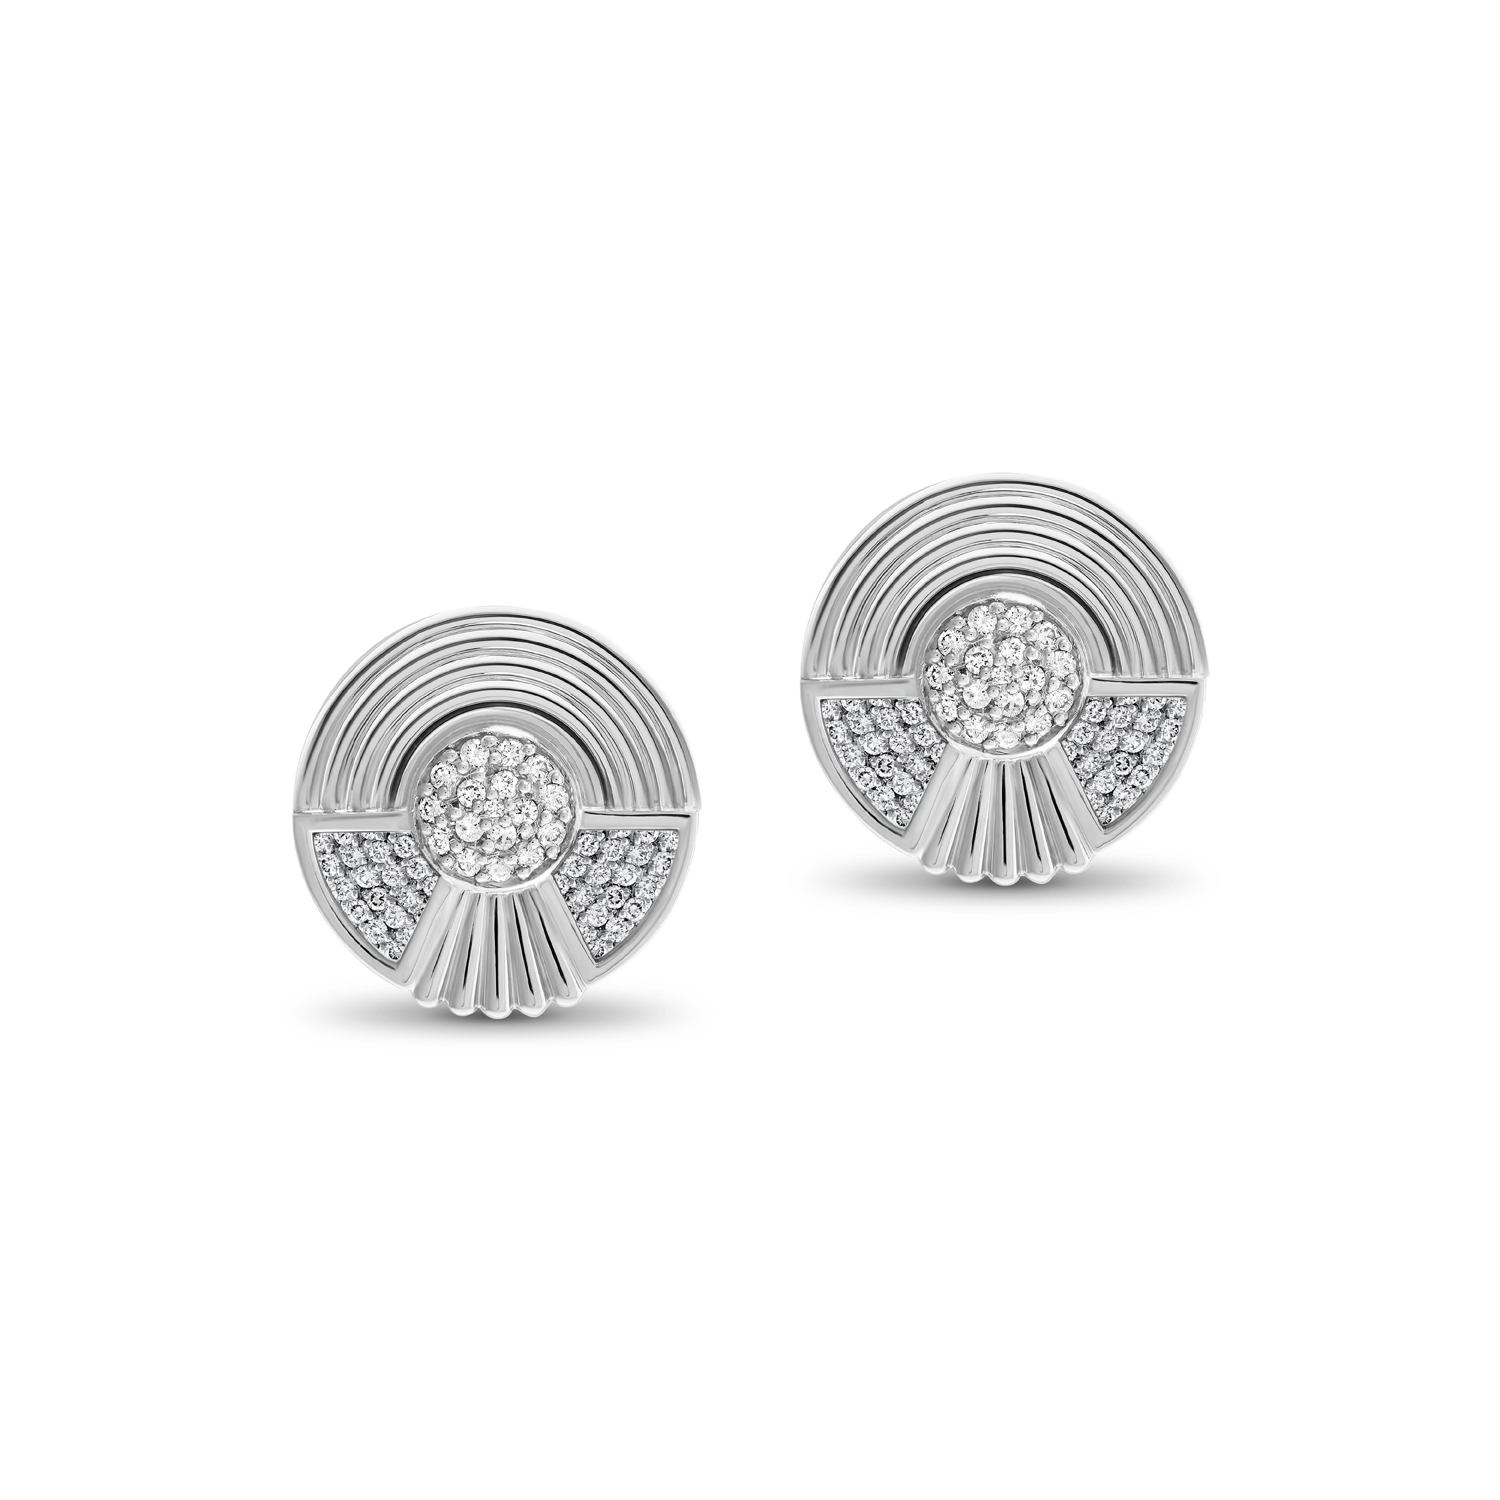 Art Deco Style Earrings Best Home Style Inspiration